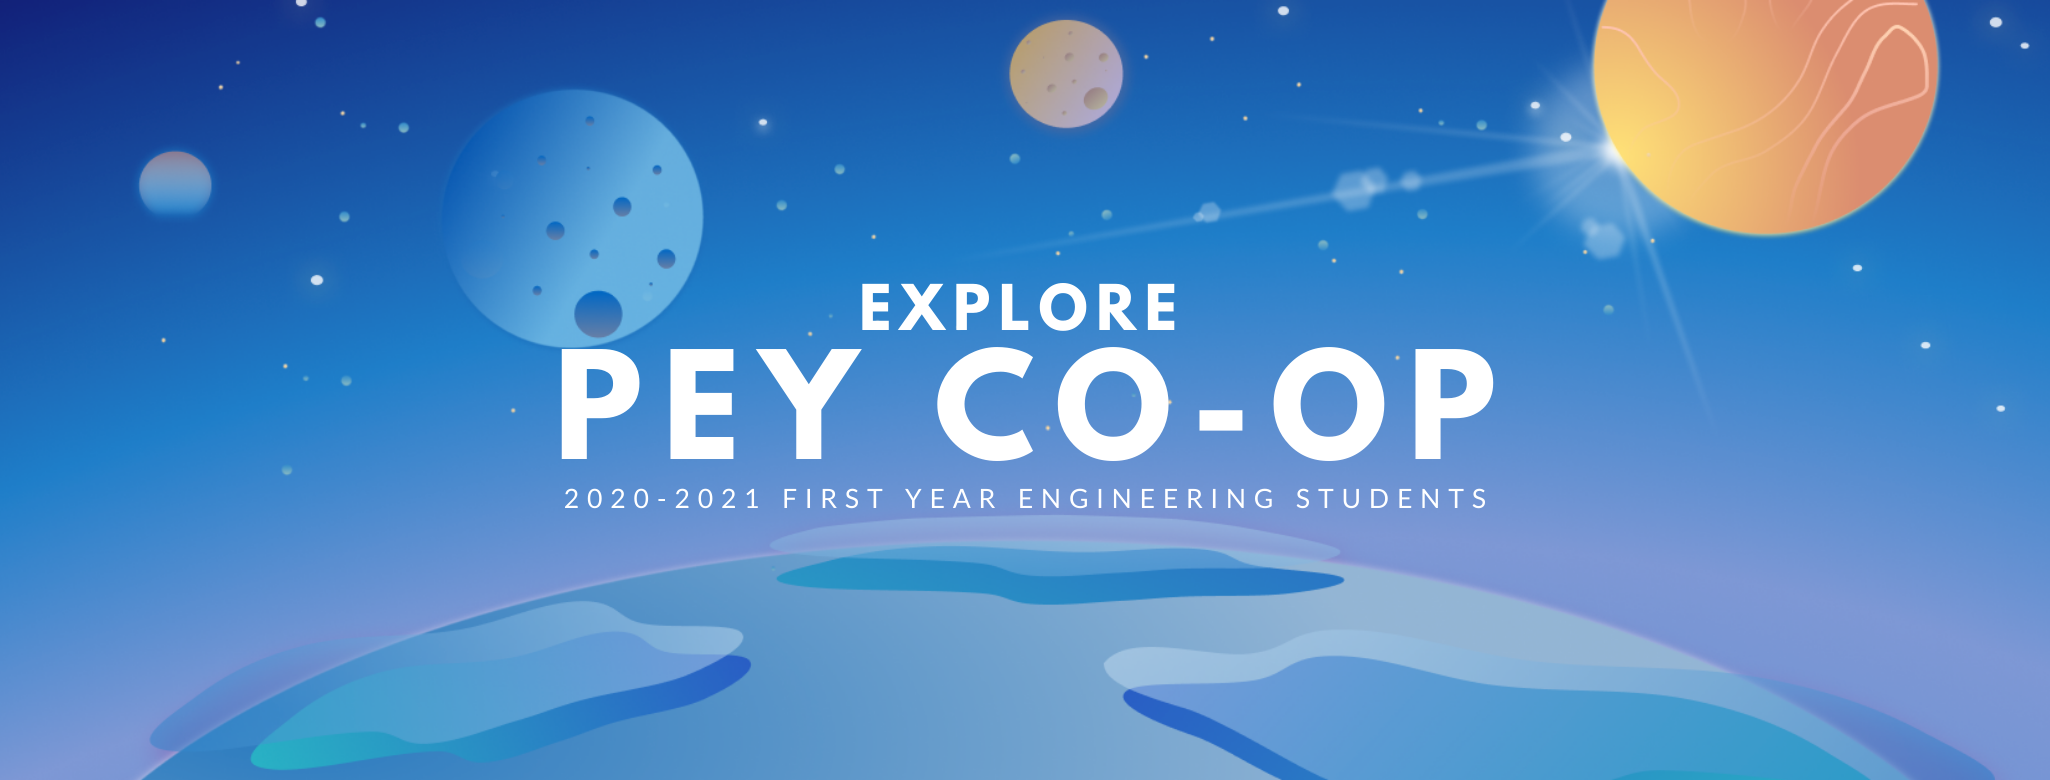 Explore PEY Co-op: 2020-2021 First Year Engineering Students